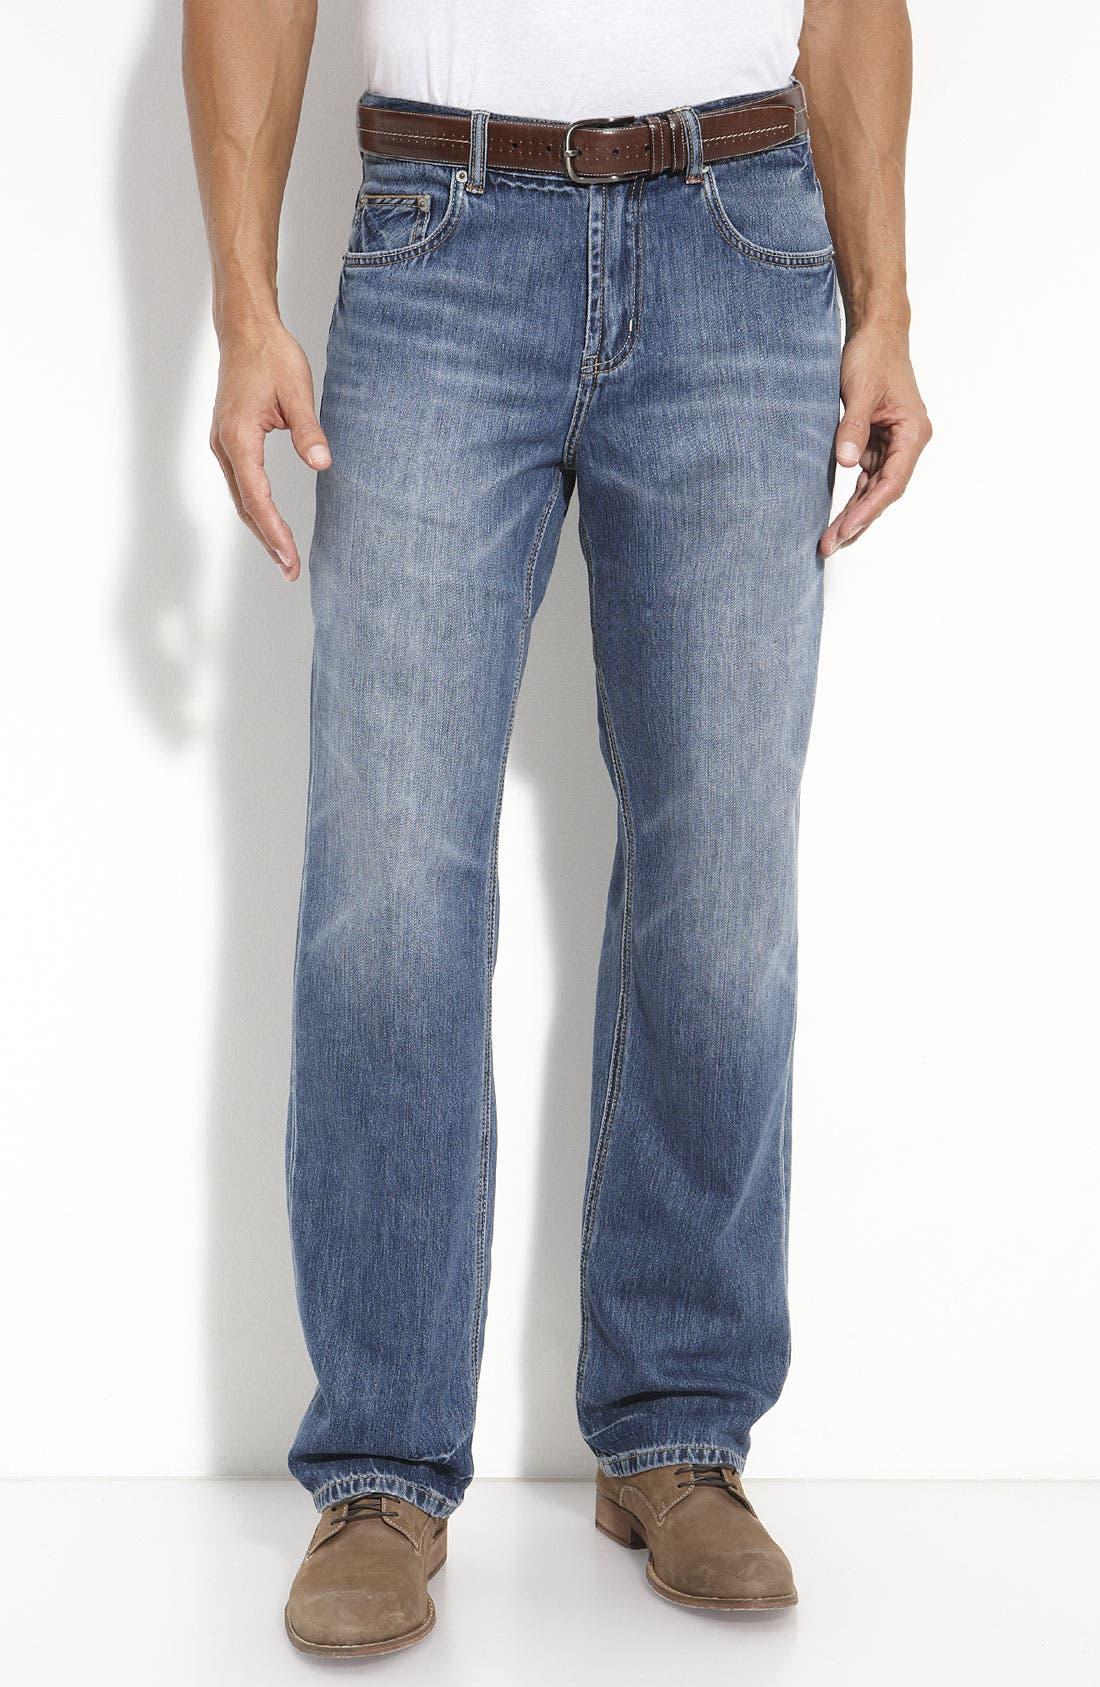 Alternate Image 1 Selected - Tommy Bahama Denim 'Island Ease' Classic Fit Jeans (Vintage Medium)(Big & Tall)